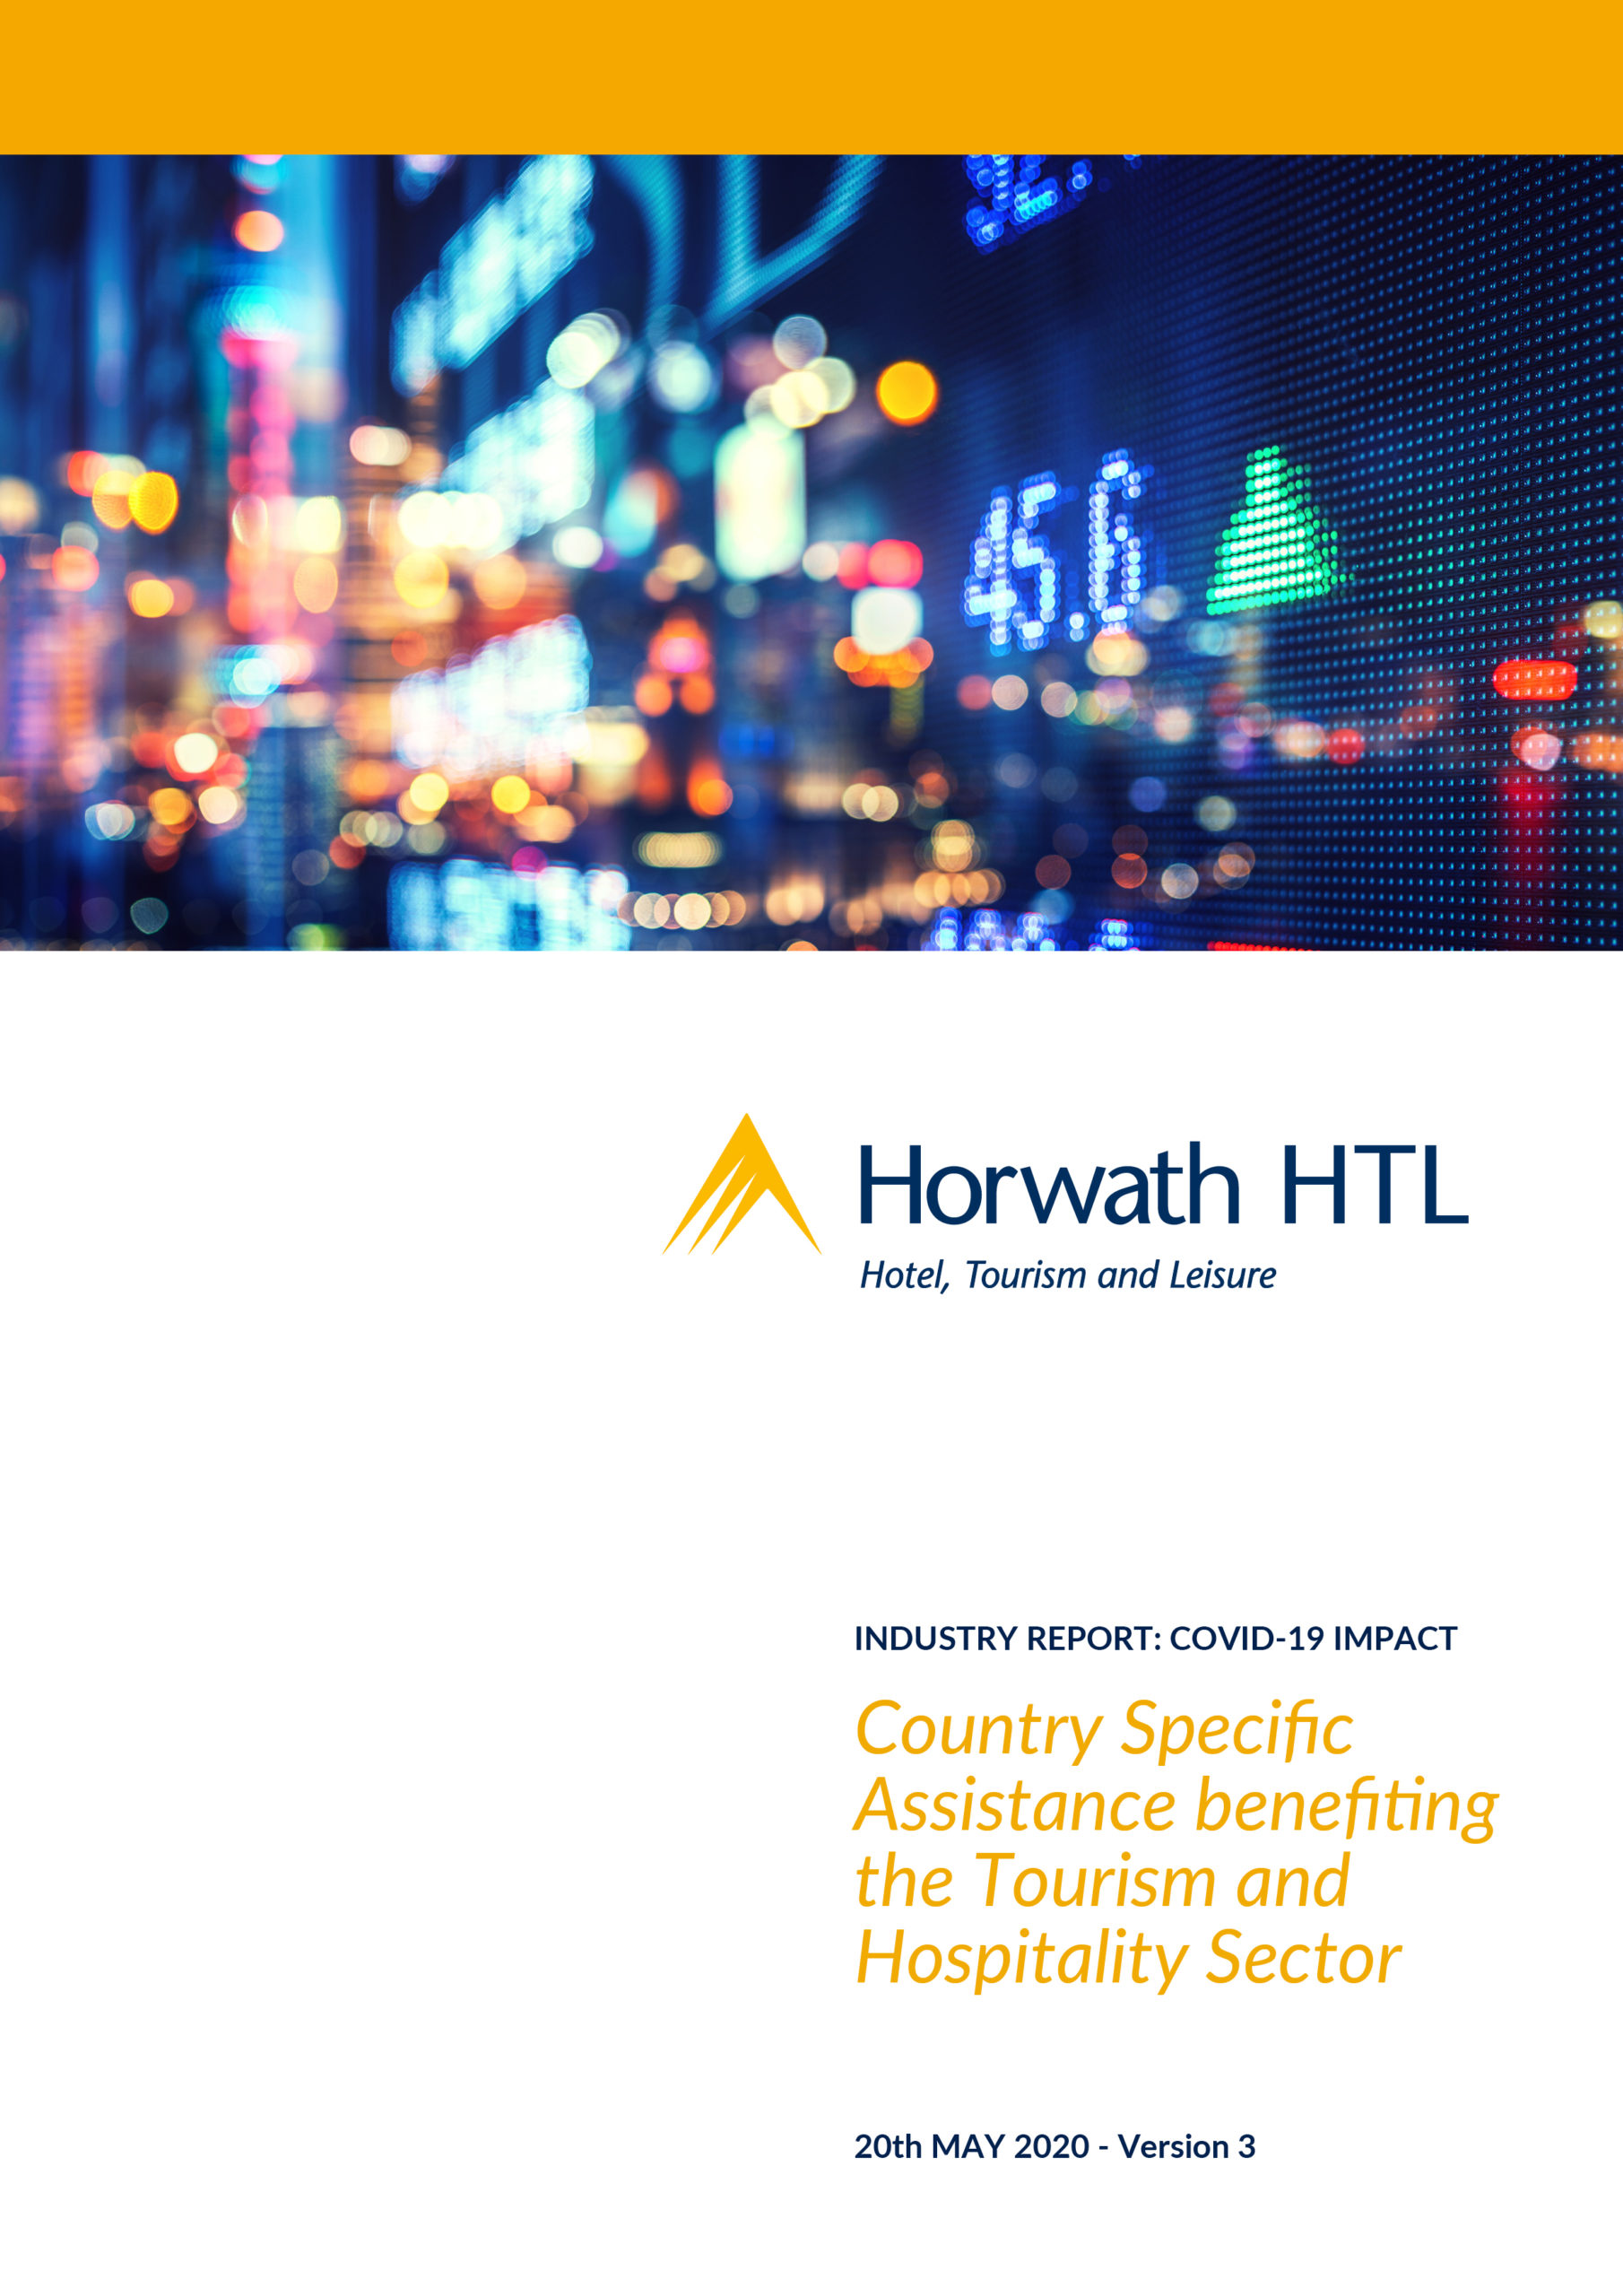 Updated! Tourism & Hospitality Sector Assistance (V.3)